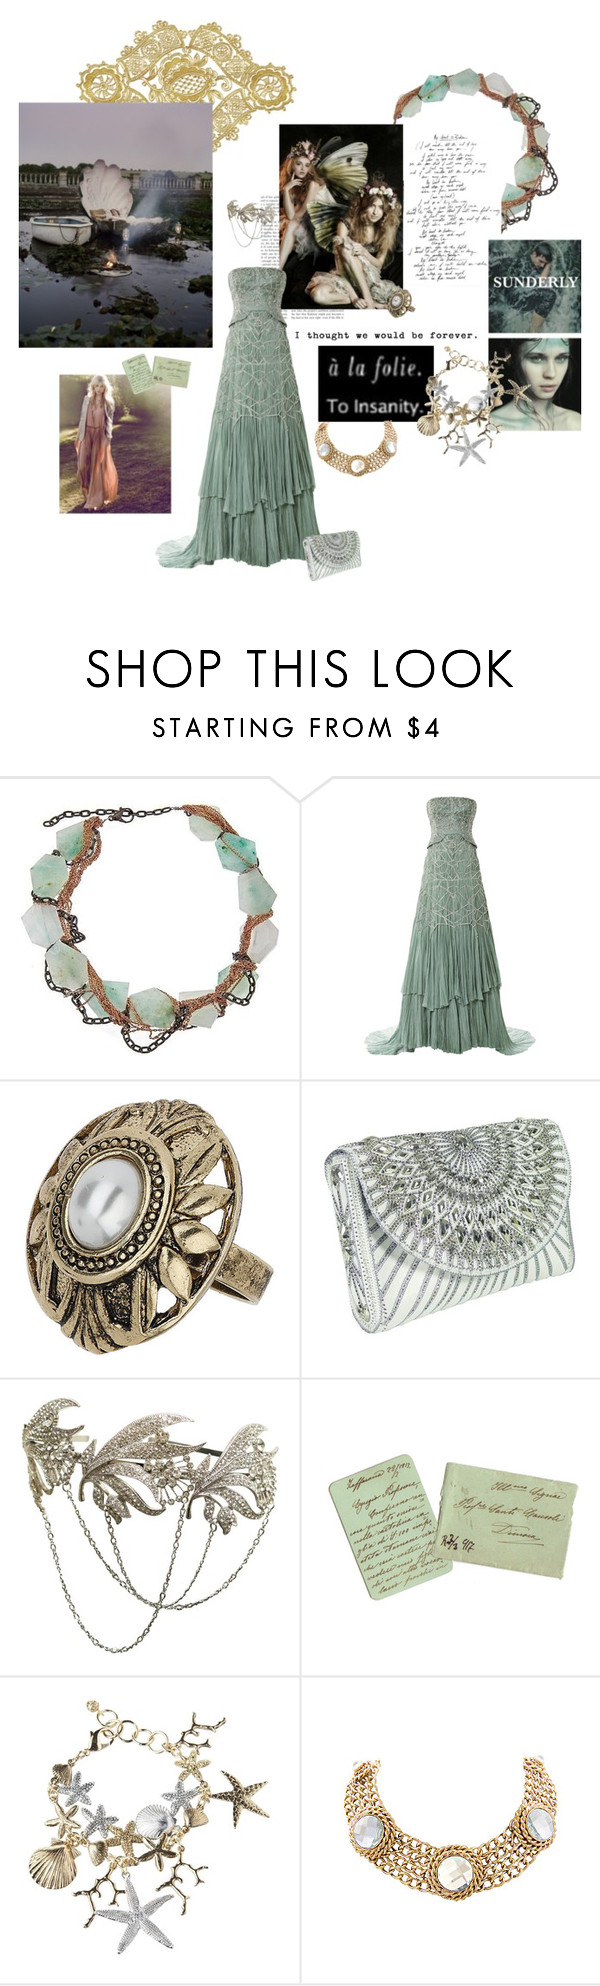 """House Sunderly"" by summersdream ❤ liked on Polyvore featuring Gemma Redux, Bibhu Mohapatra, Topshop, BUBA, Swarovski, GameOfThrones, ASongOfIceAndFire, asoiaf and Westeros"